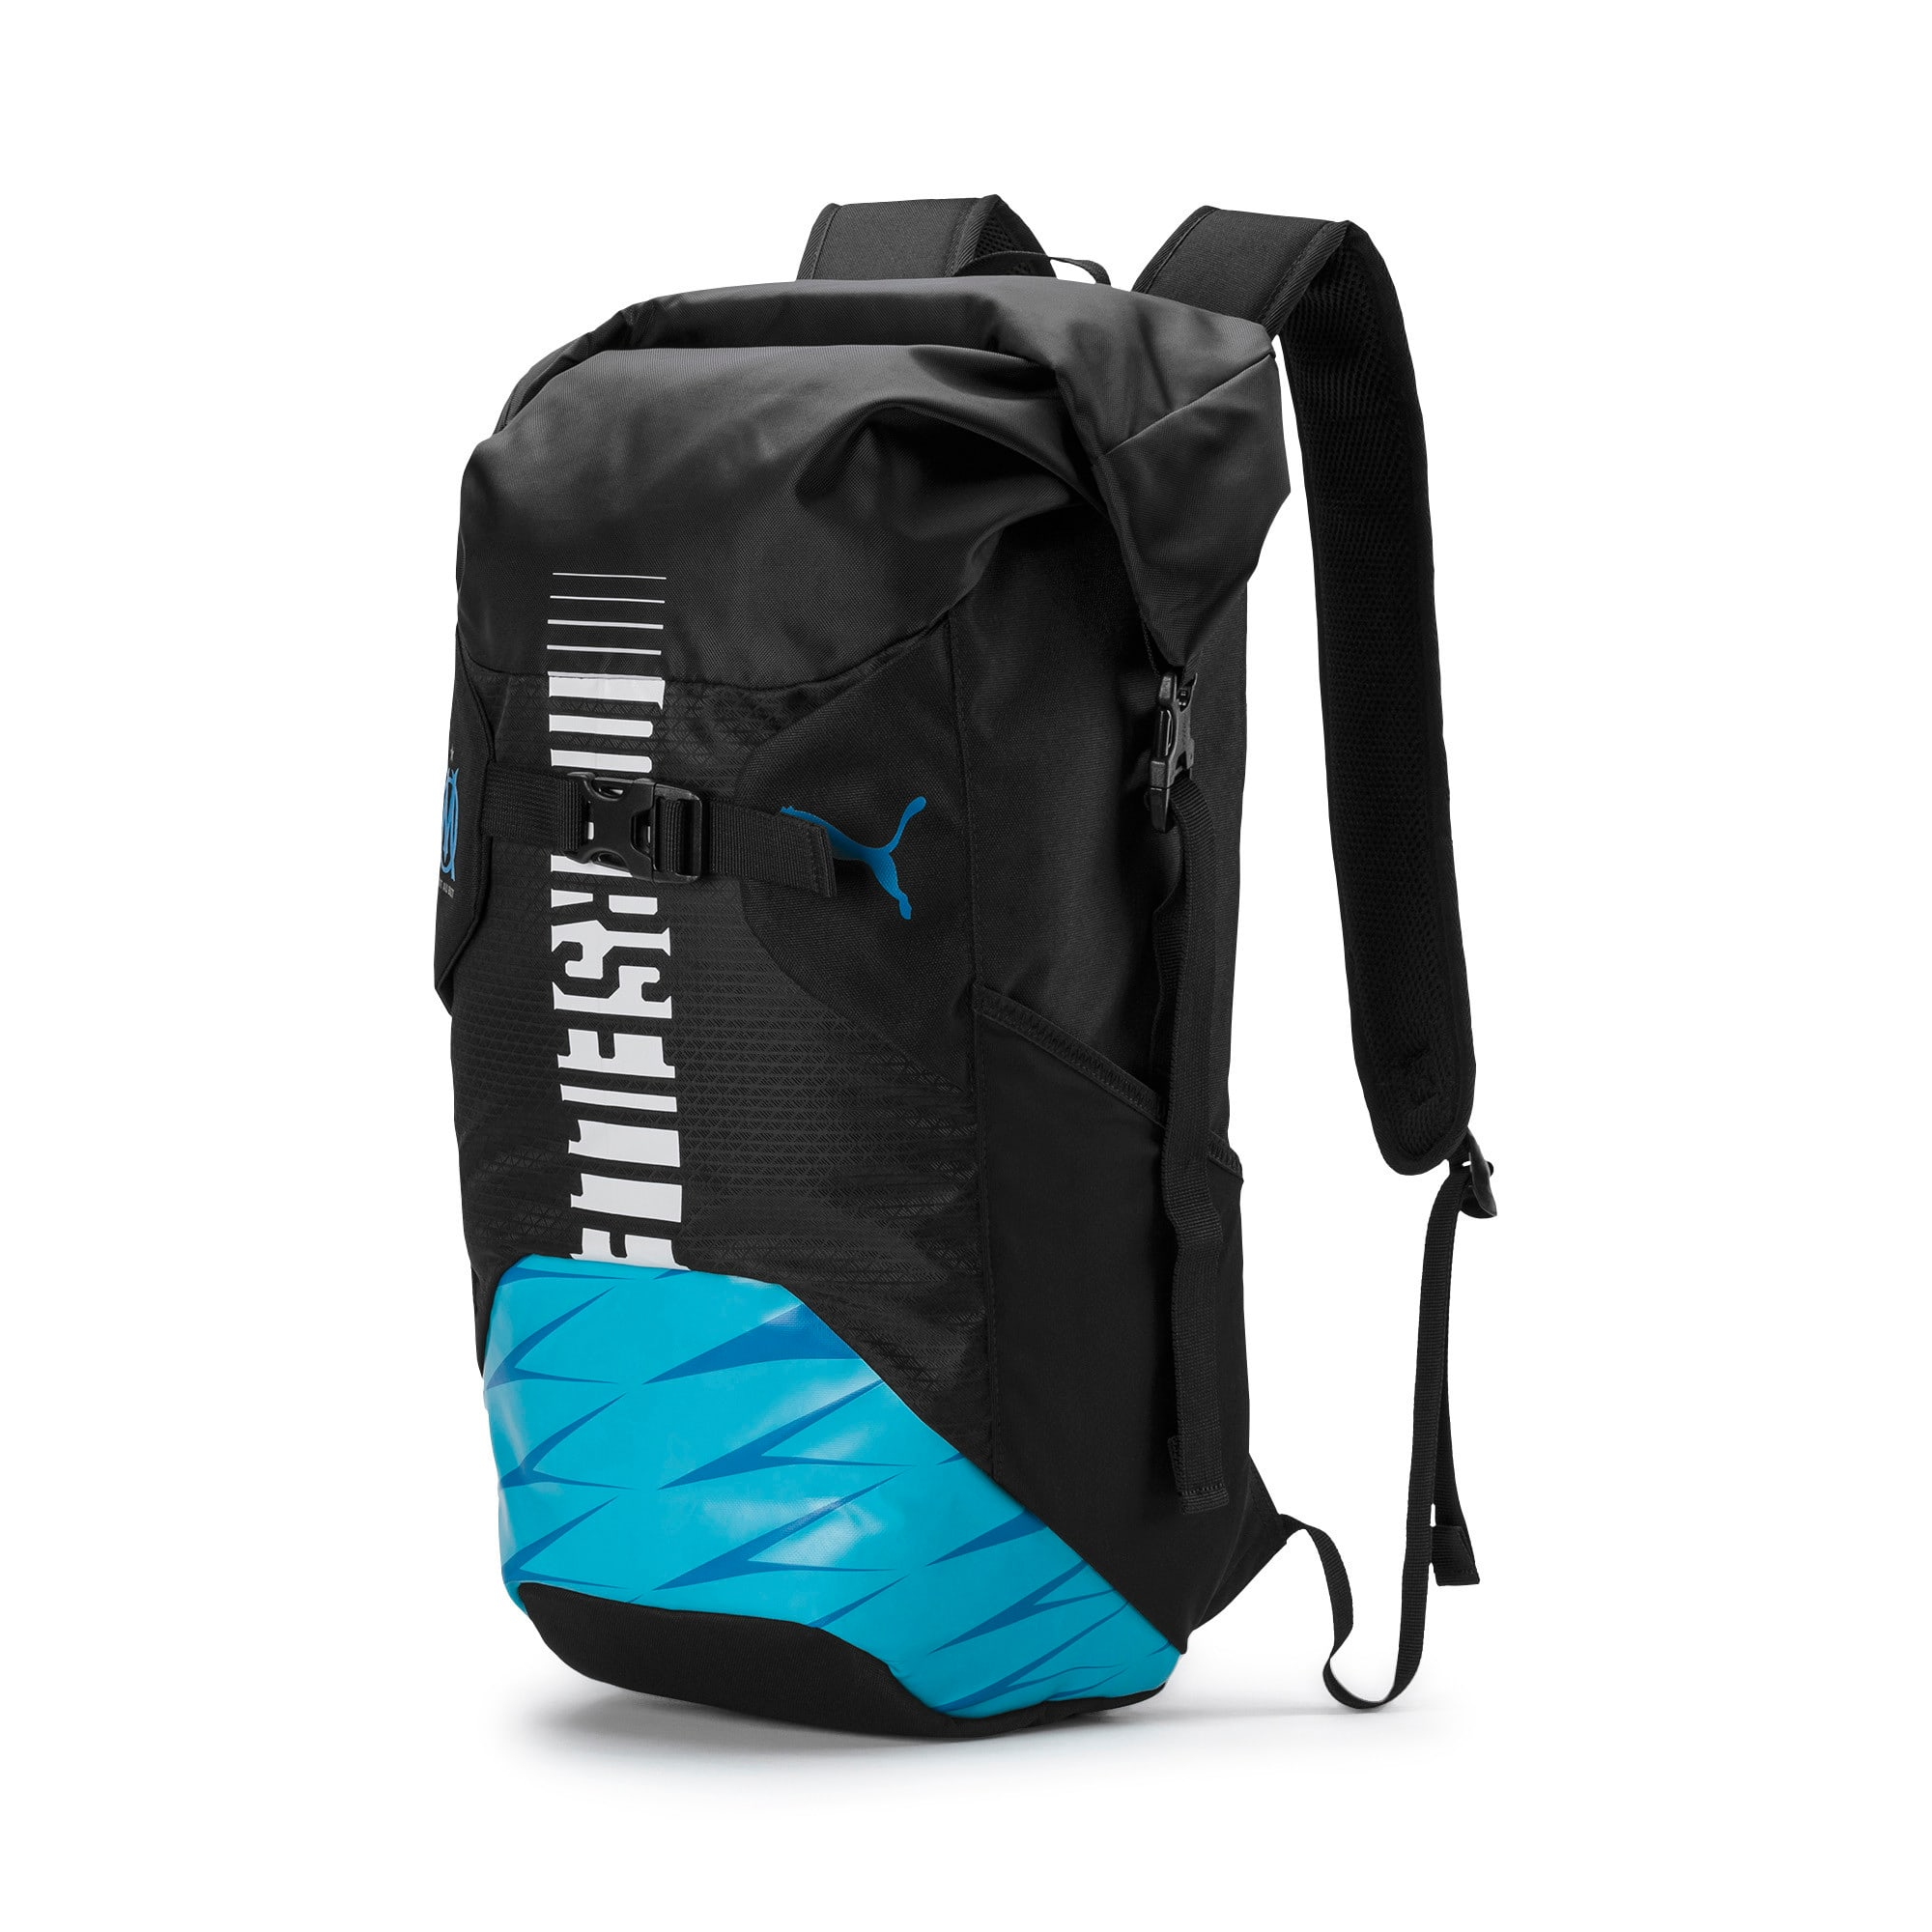 Thumbnail 1 of Olympique de Marseille Football Culture Rolltop Backpack, Puma Black-Bleu Azur-White, medium